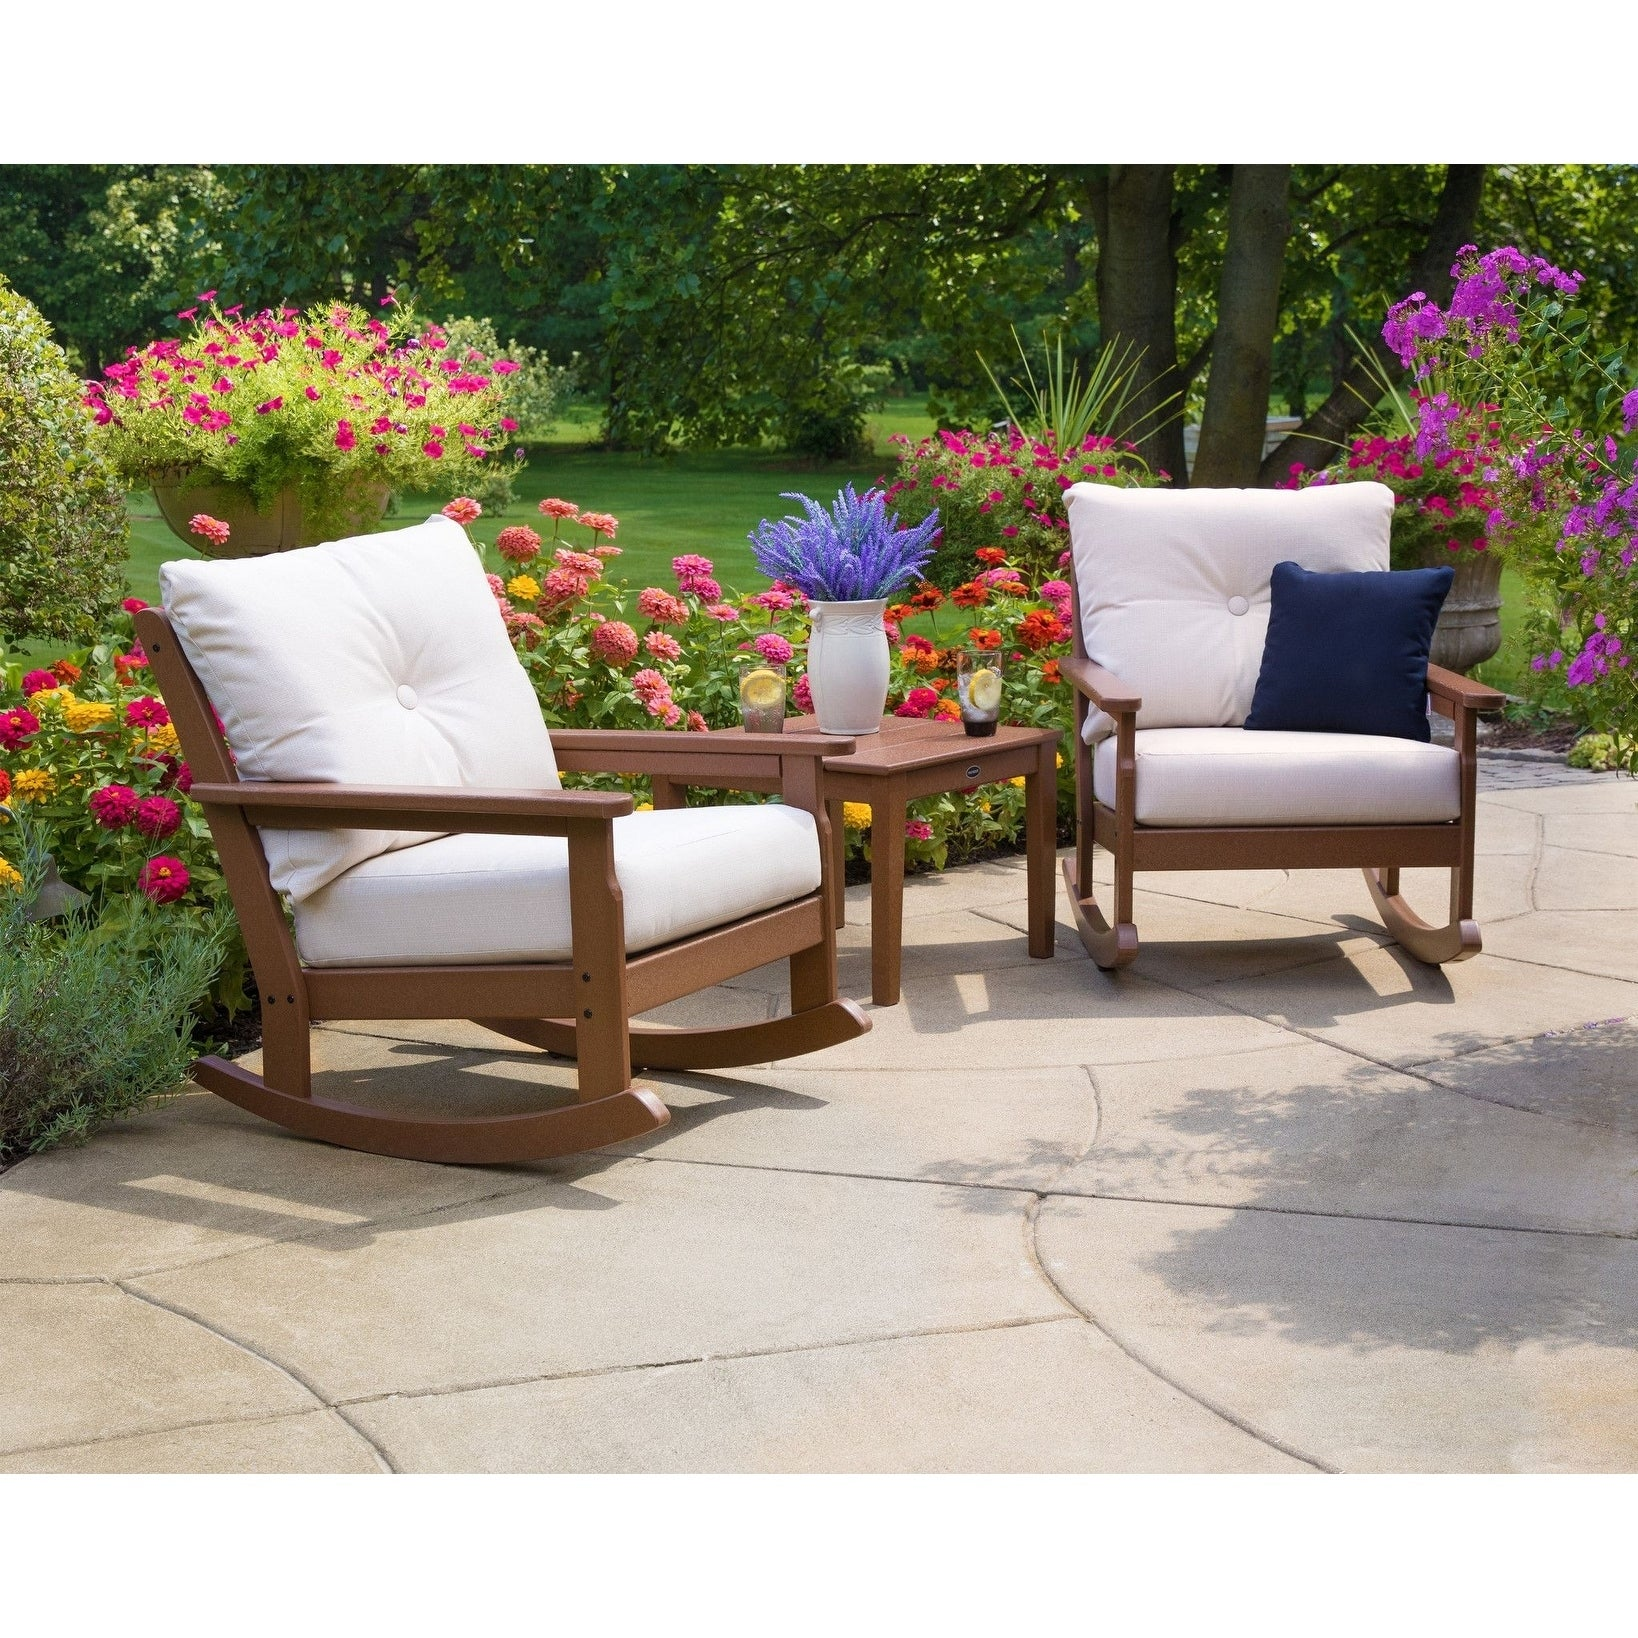 Polywood Vineyard Outdoor Deep Seating